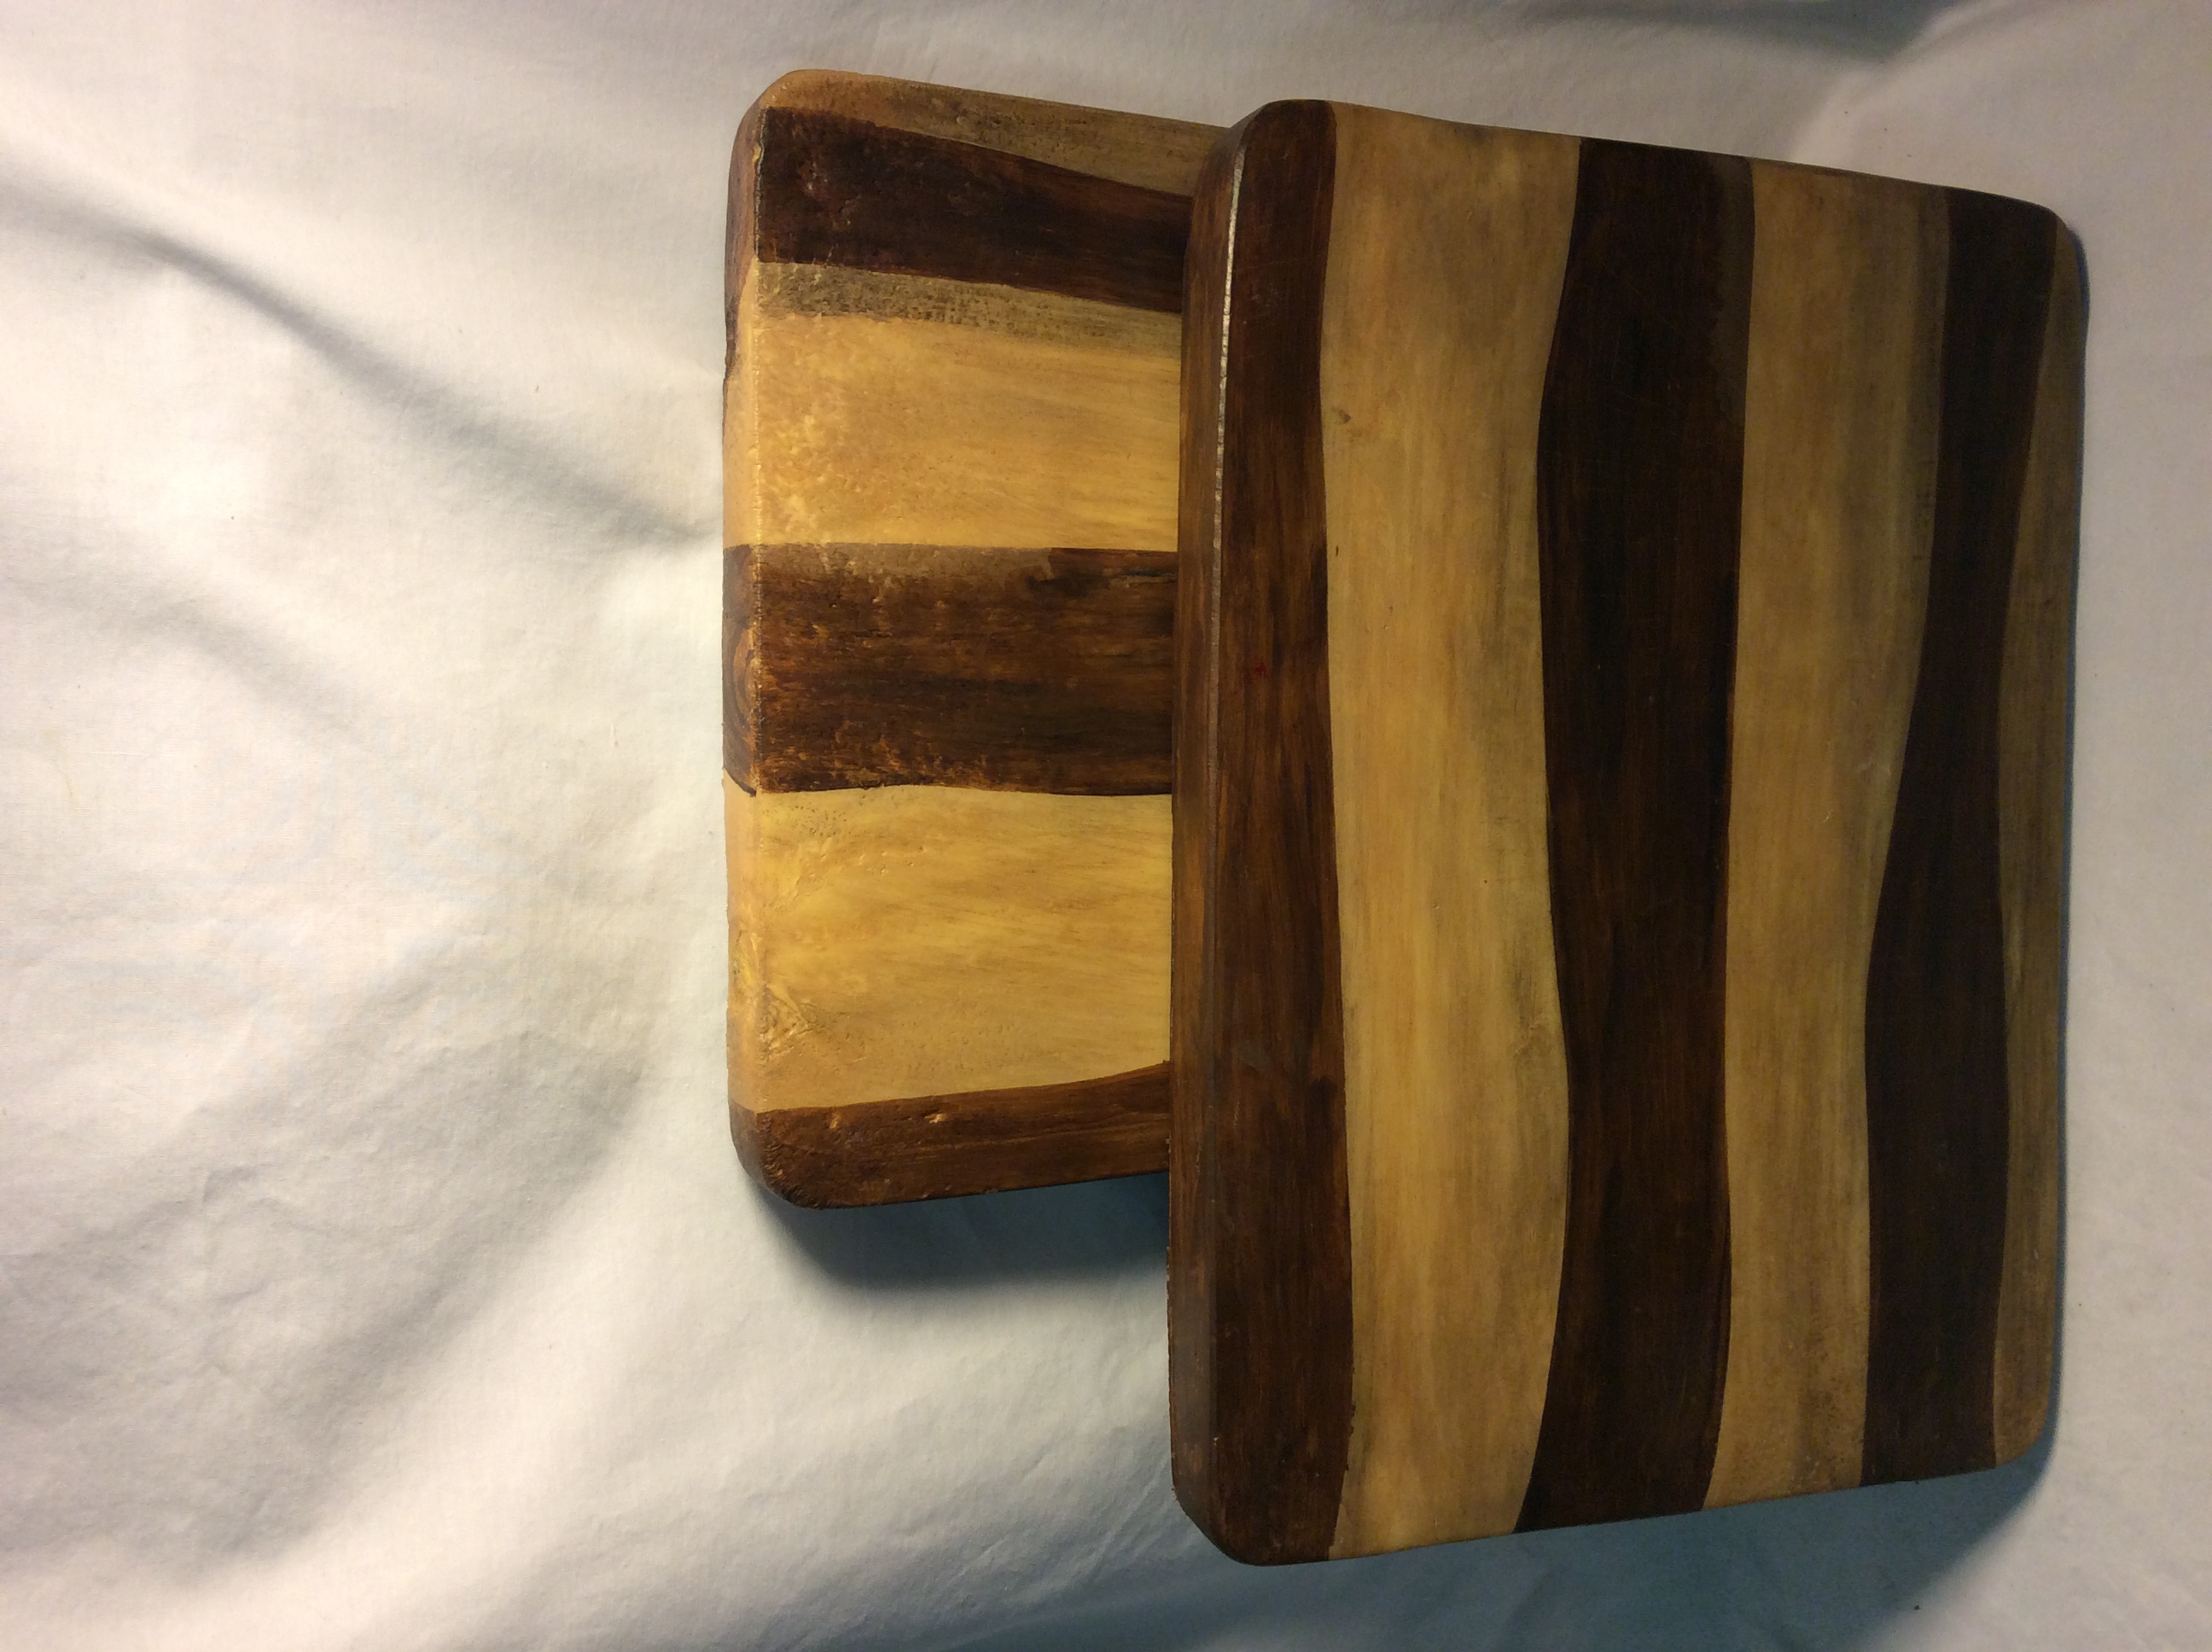 Fake wooden cutting board - 2 rubber